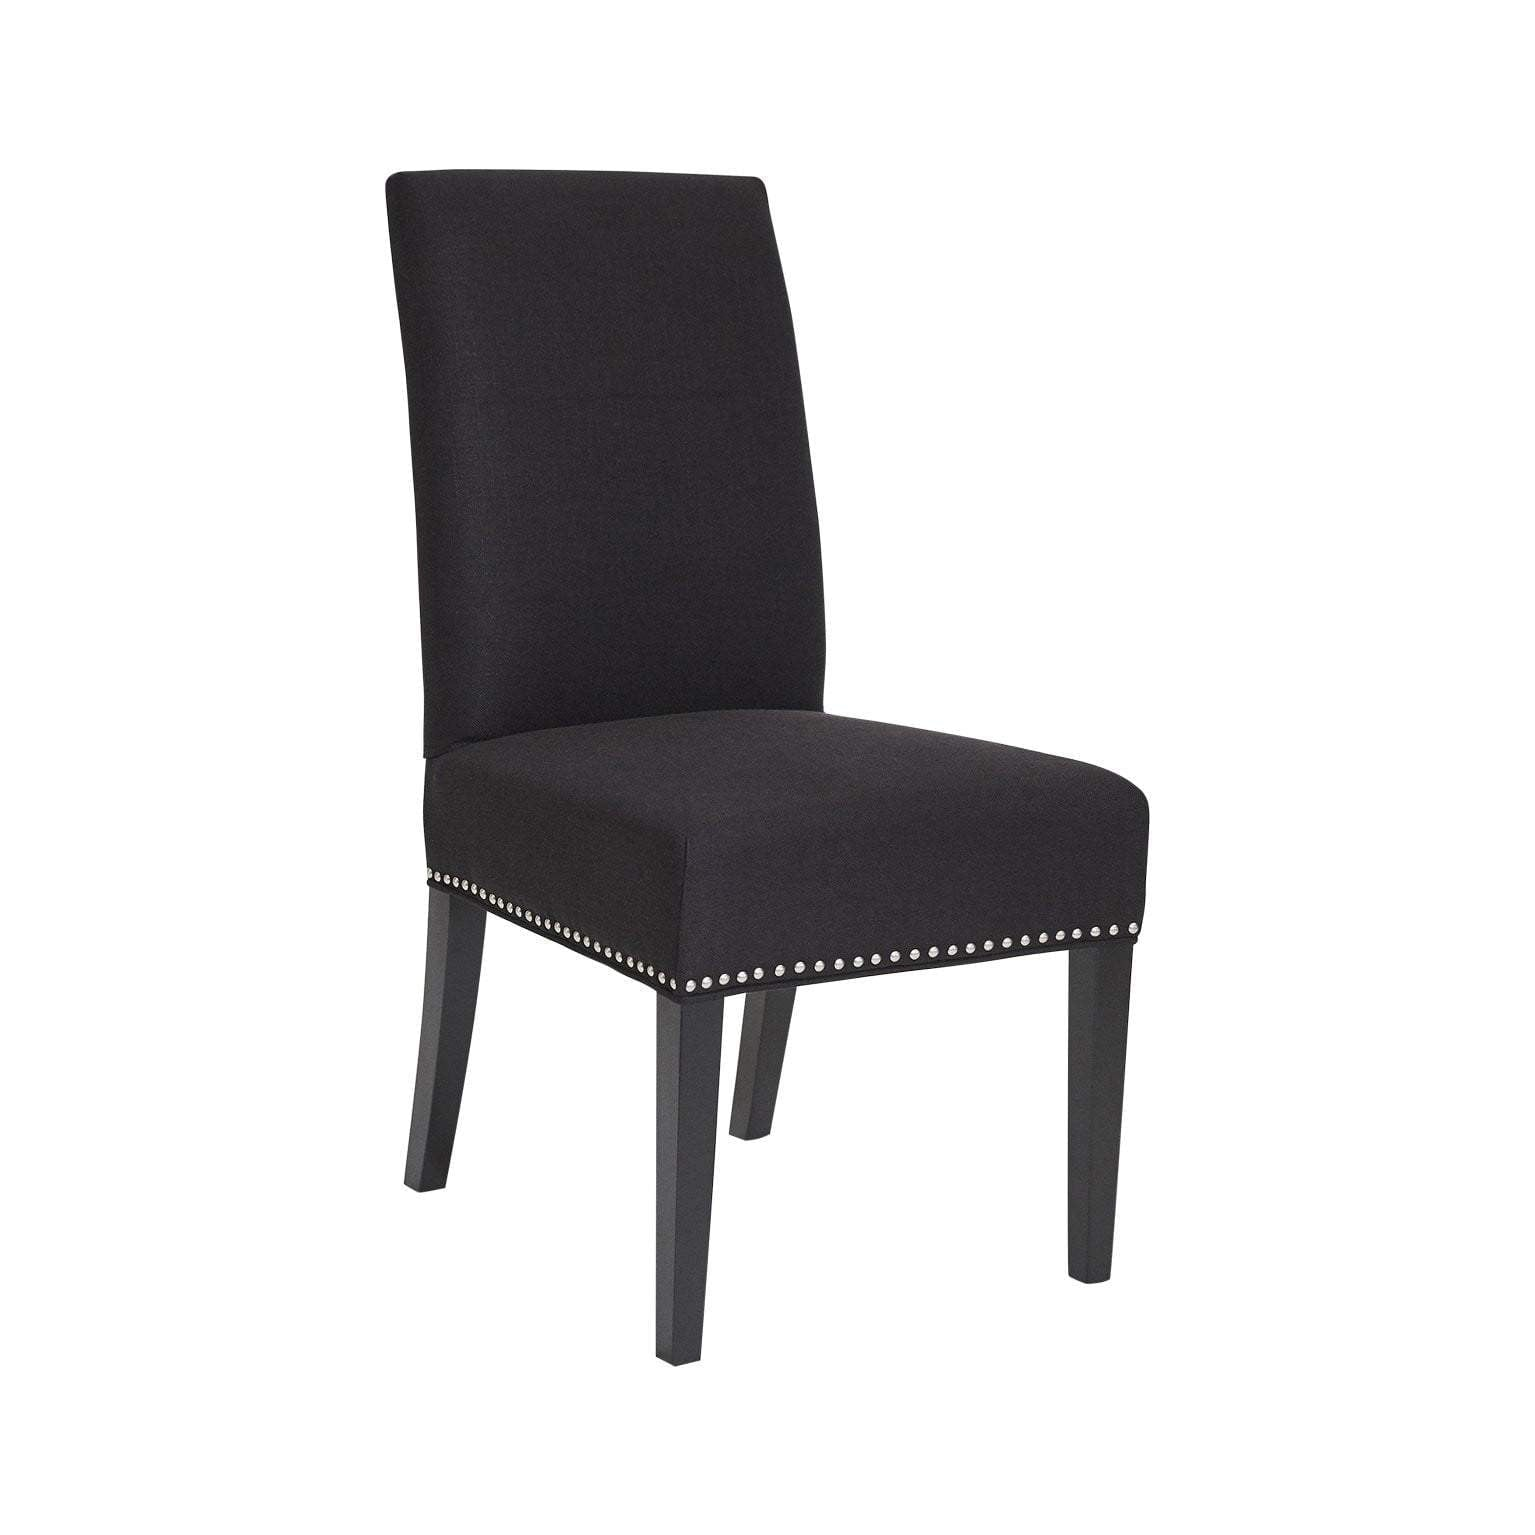 Bentley Dining Chair Black